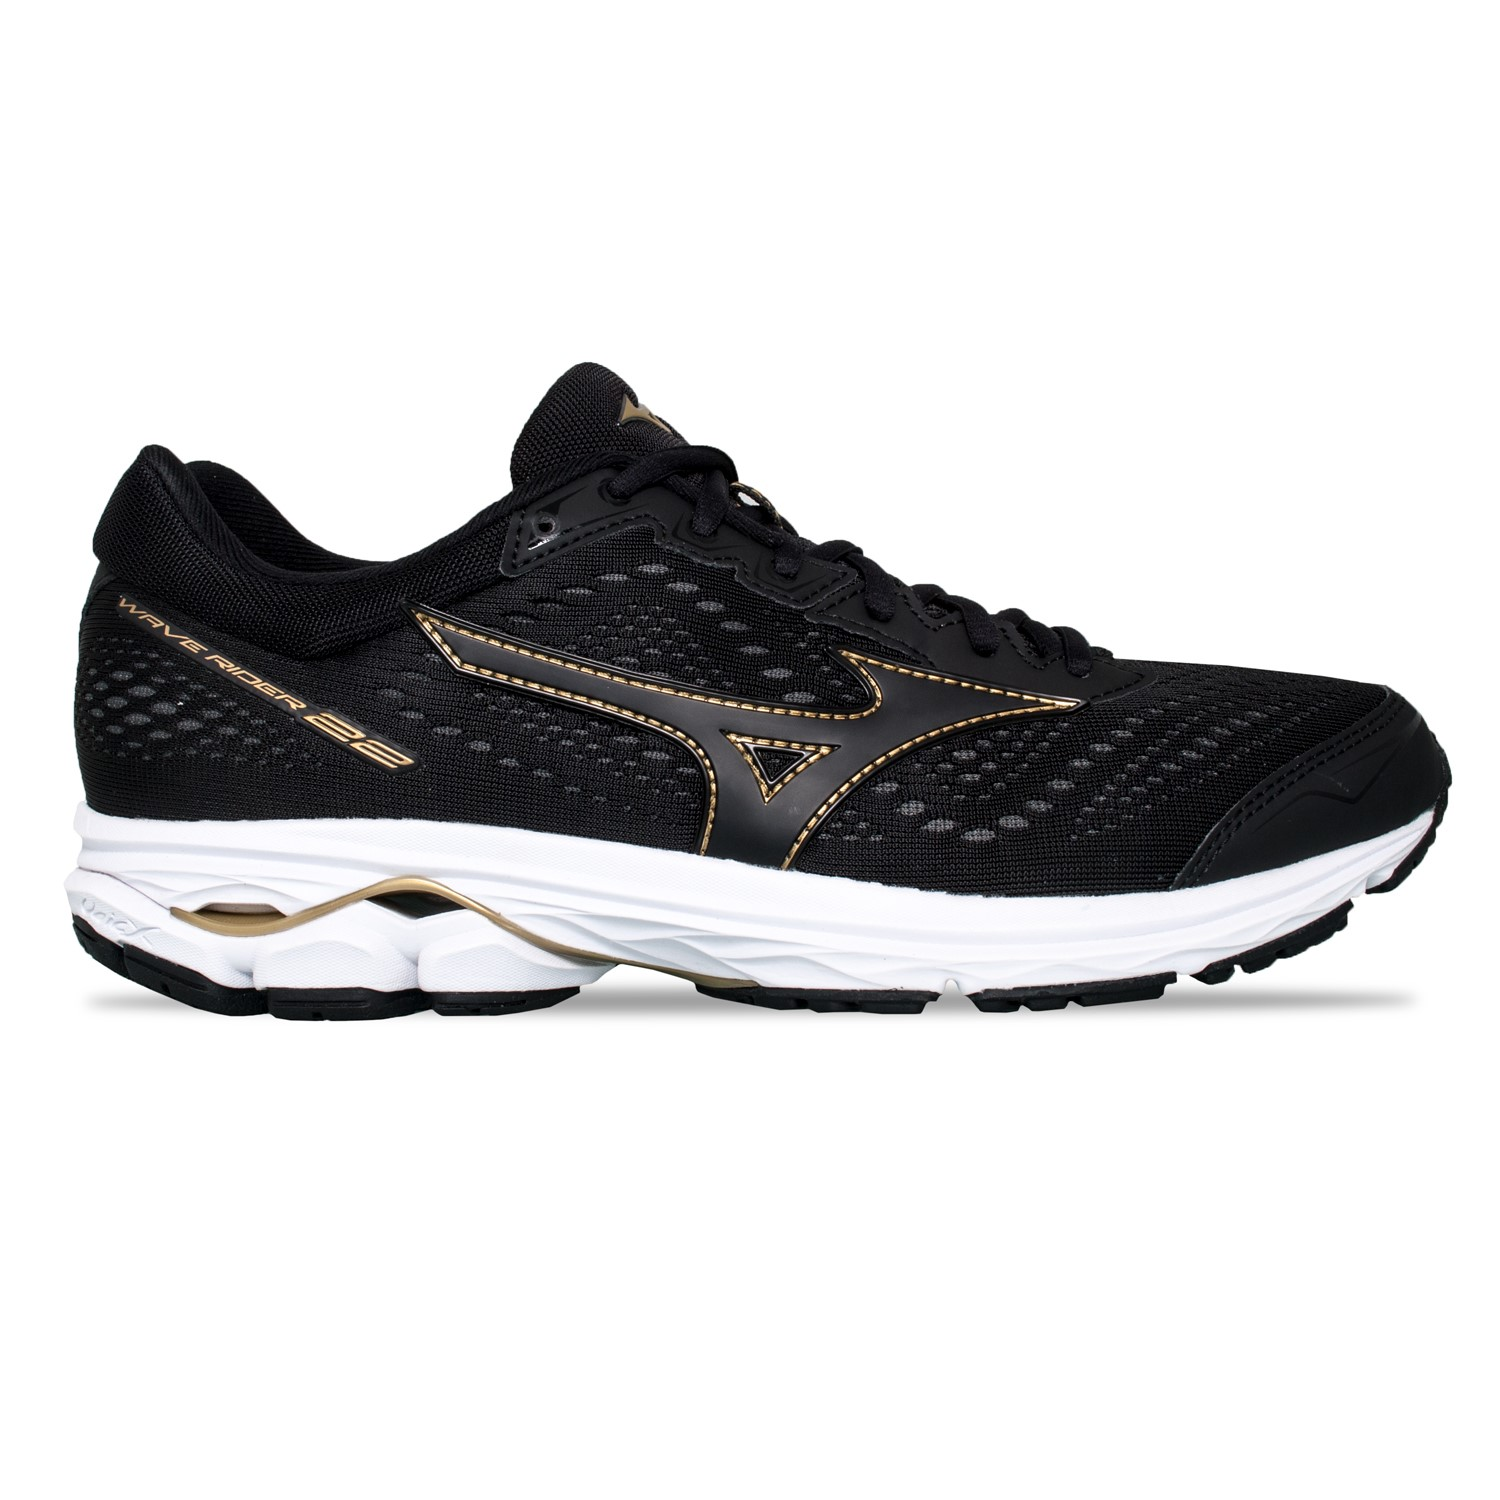 more photos c97d3 2b5a8 Mizuno Wave Rider 22 - Mens Running Shoes - Black Gold